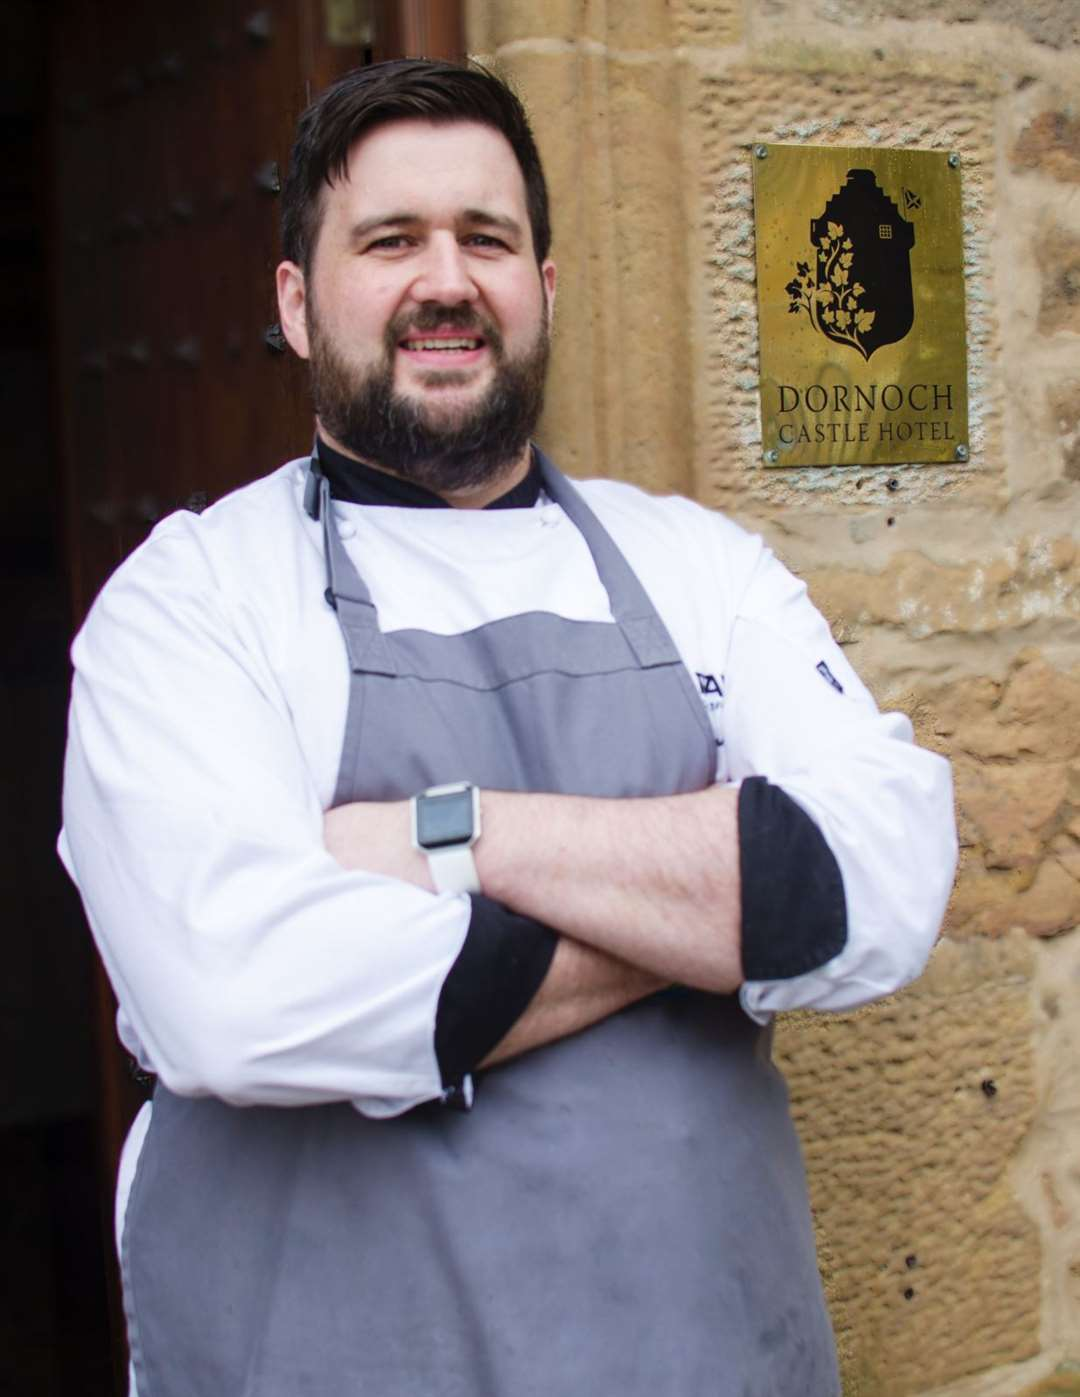 Head chef Grant Macnicol has put his name on the 55-seater restaurant at the Dornoch Castle Hotel.